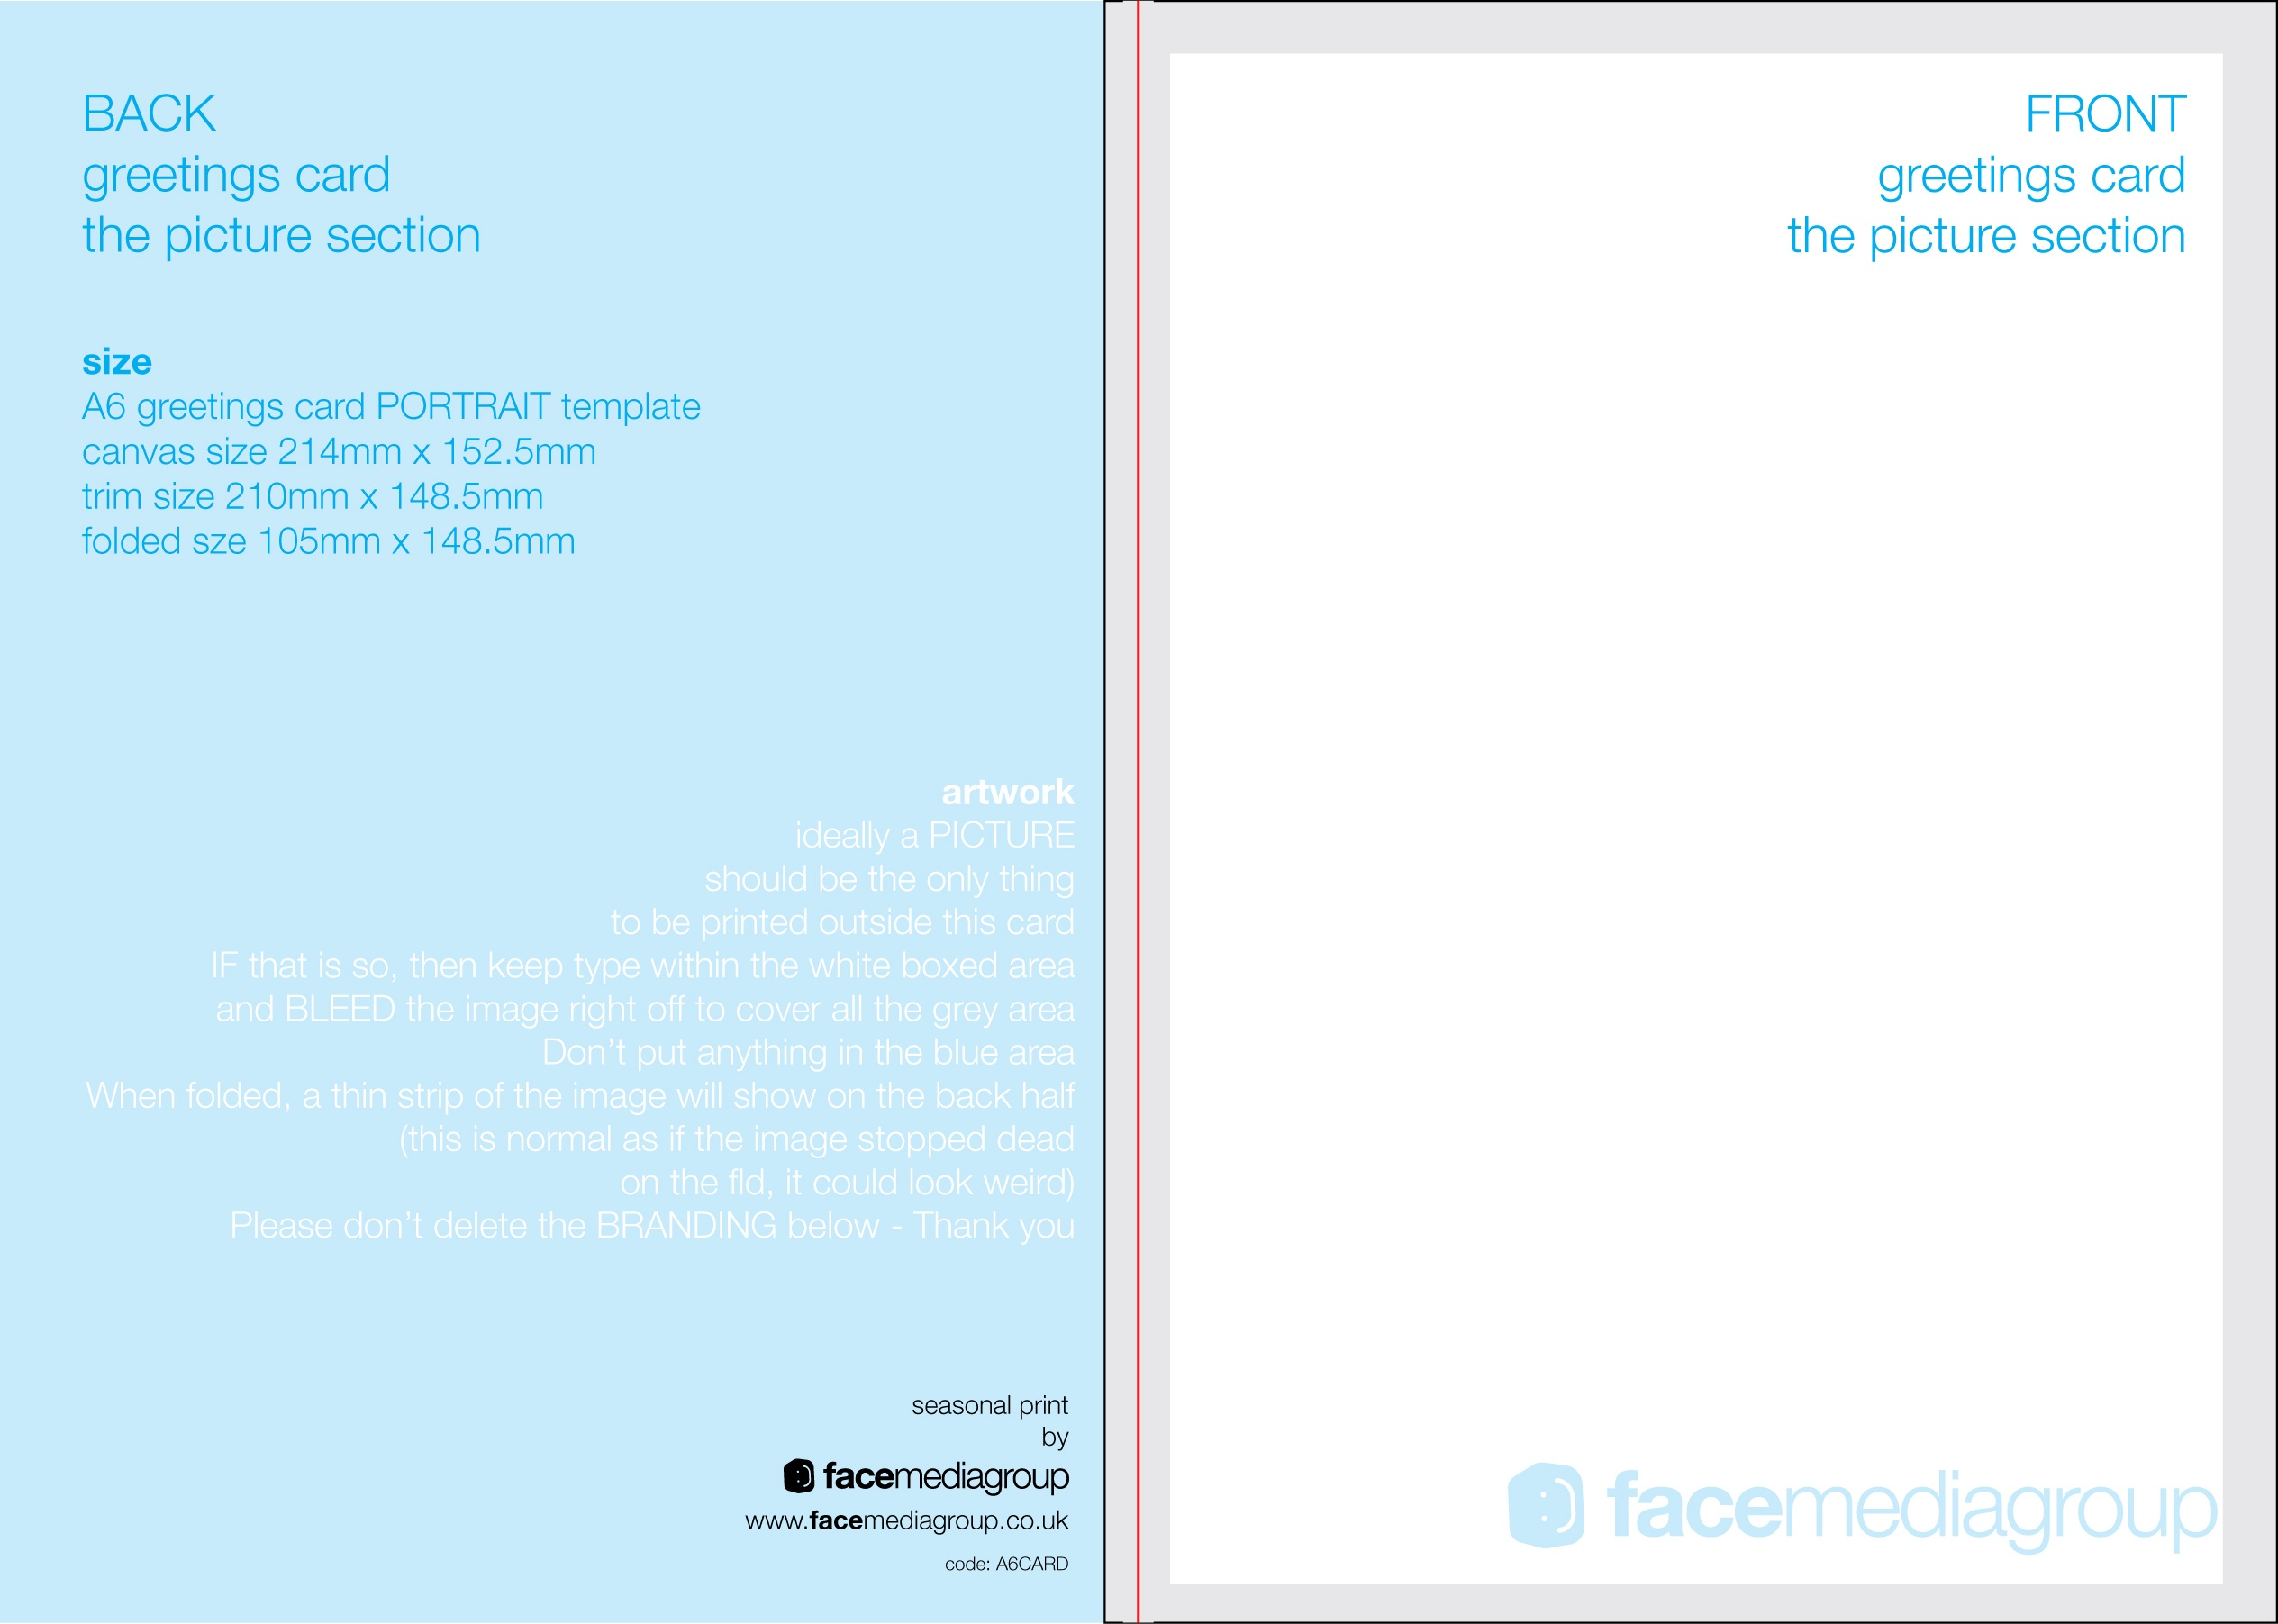 Free Blank Greetings Card Artwork Templates For Download   Face - Free Printable Blank Greeting Card Templates